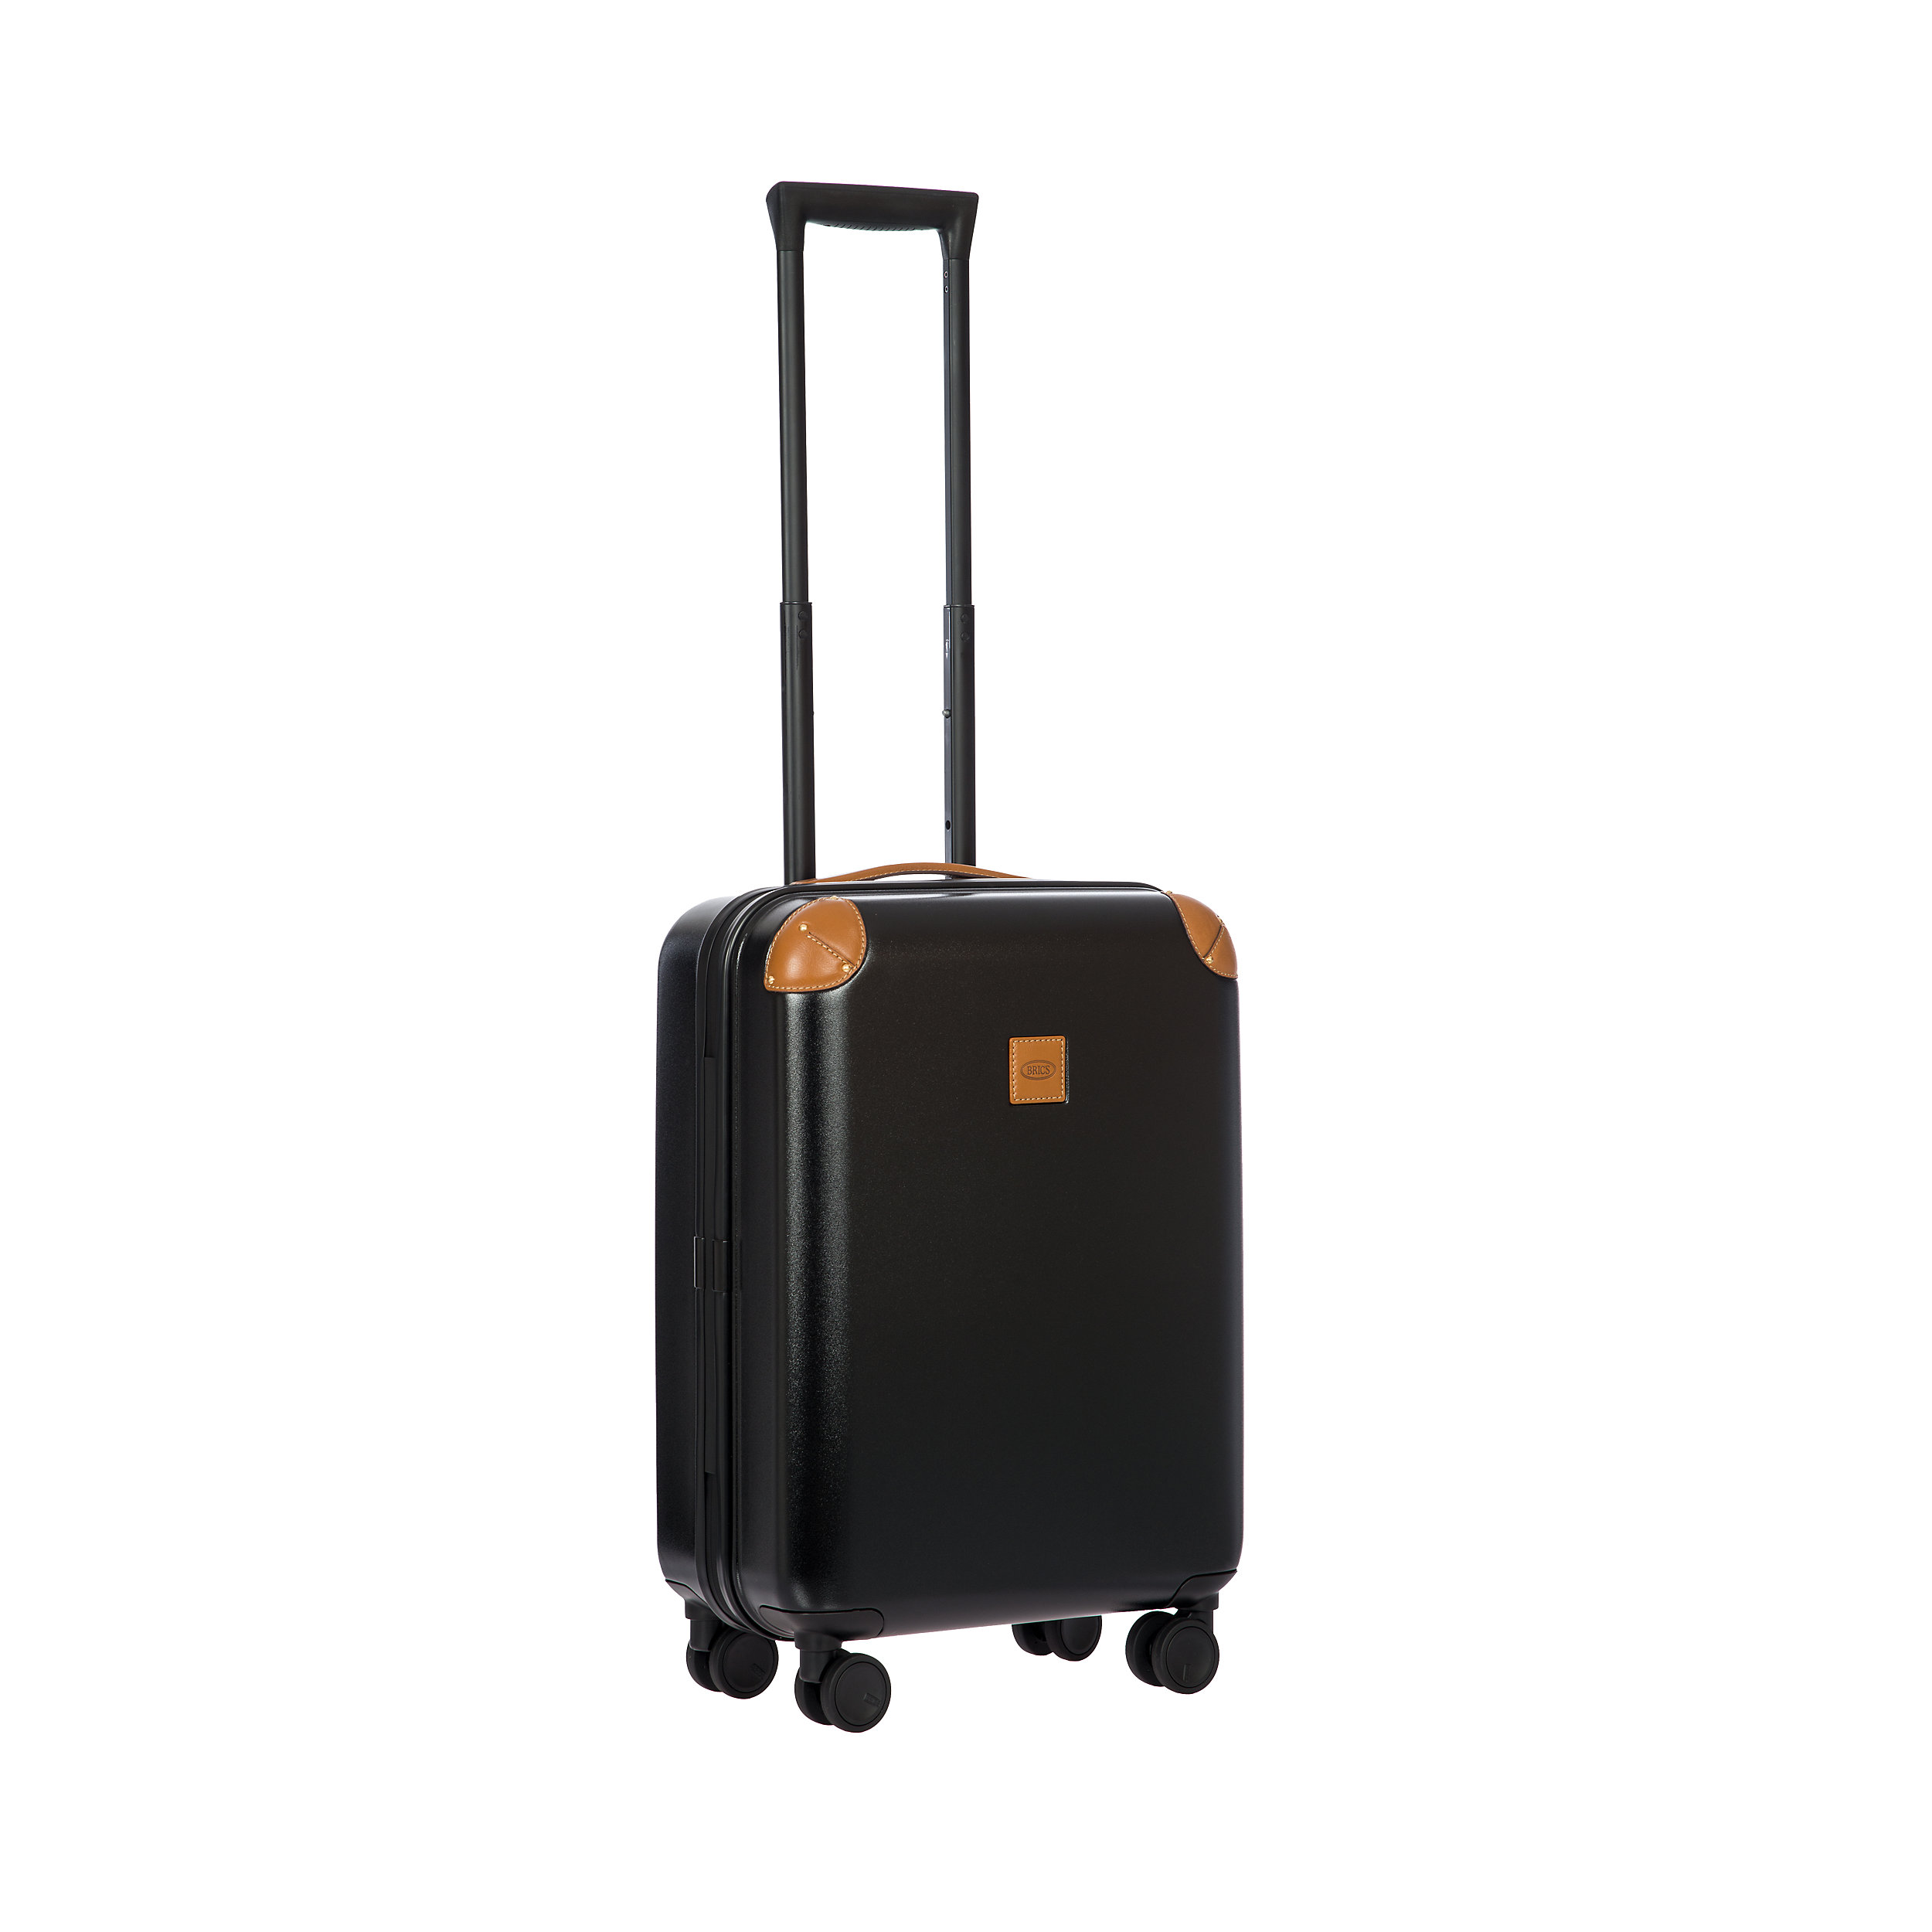 Carry-on with 4 wheels 55 cm Amalfi S 40 Liter